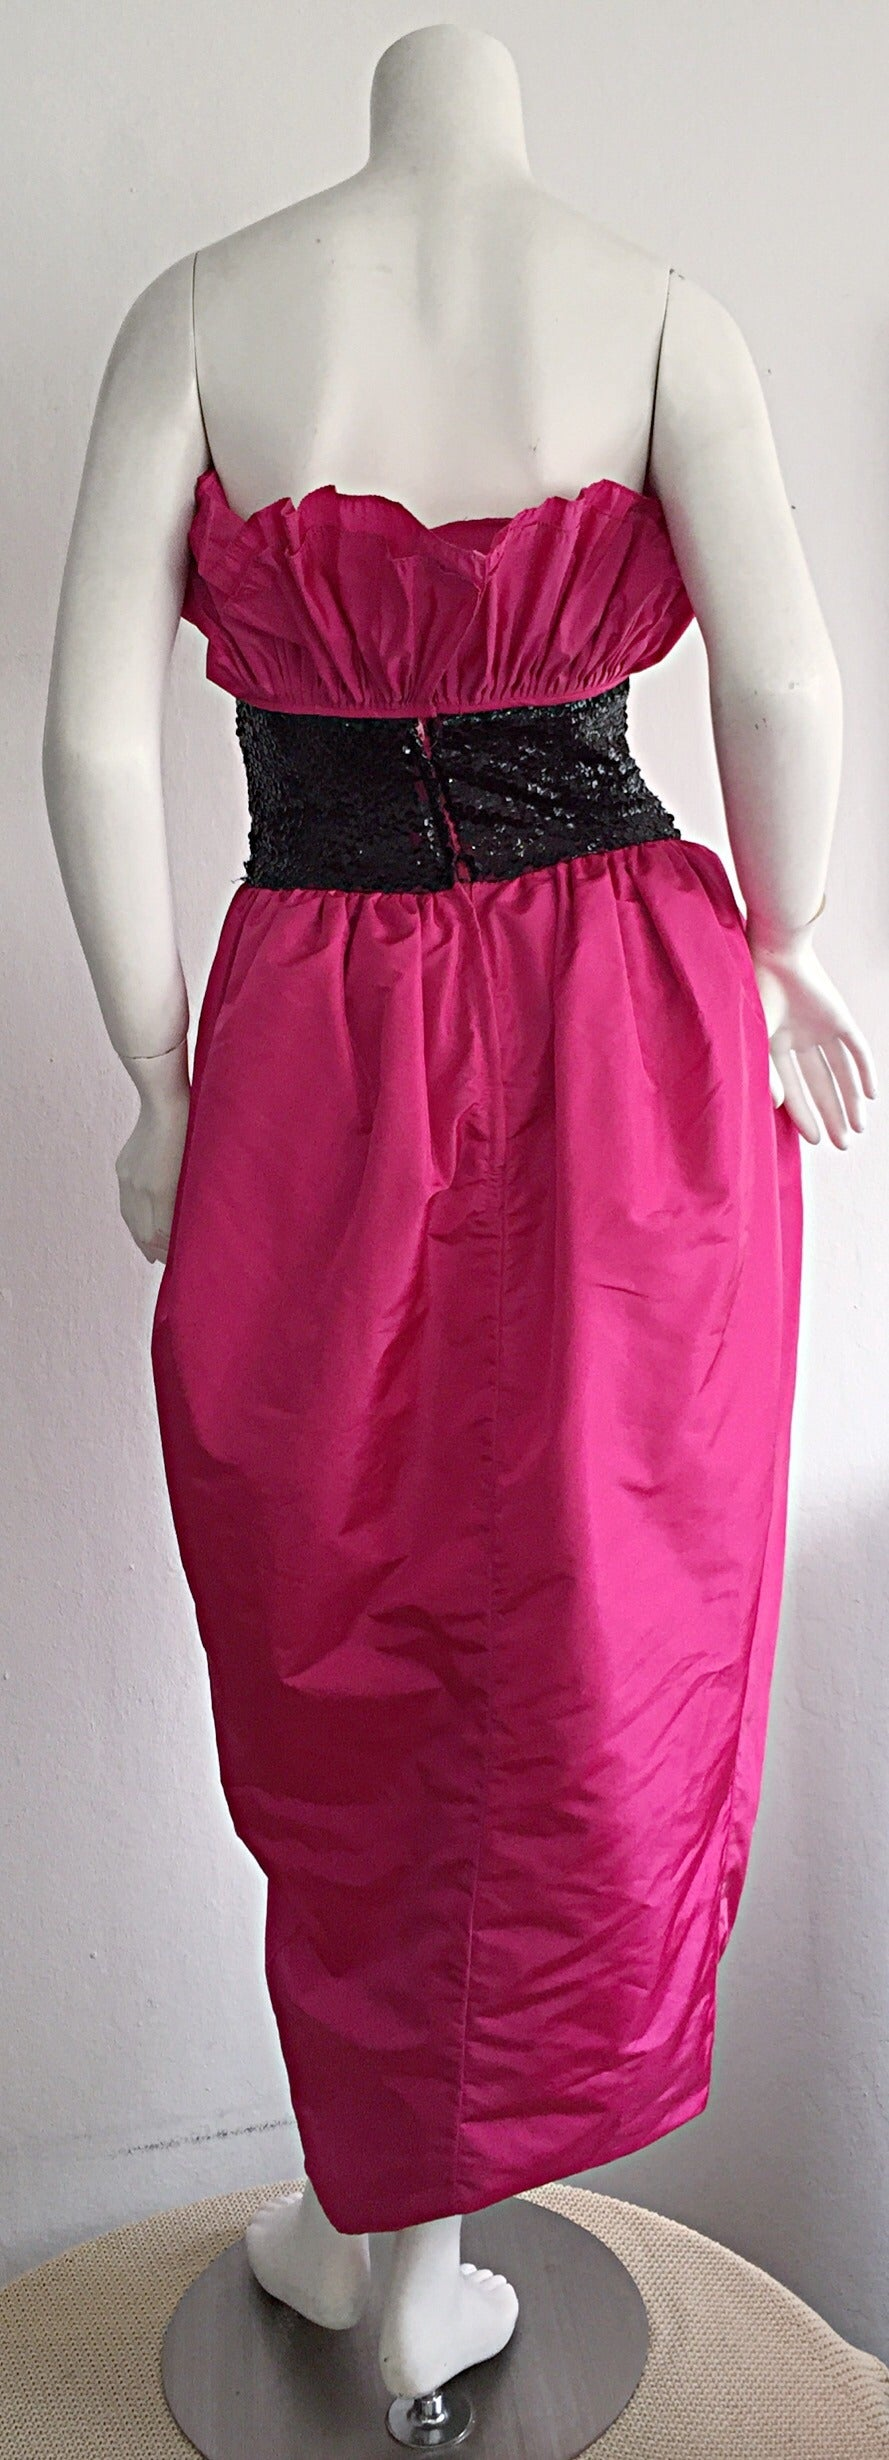 Incredible Vintage Victor Costa for Neiman Marcus Hot Pink Origami Tulip Dress 7